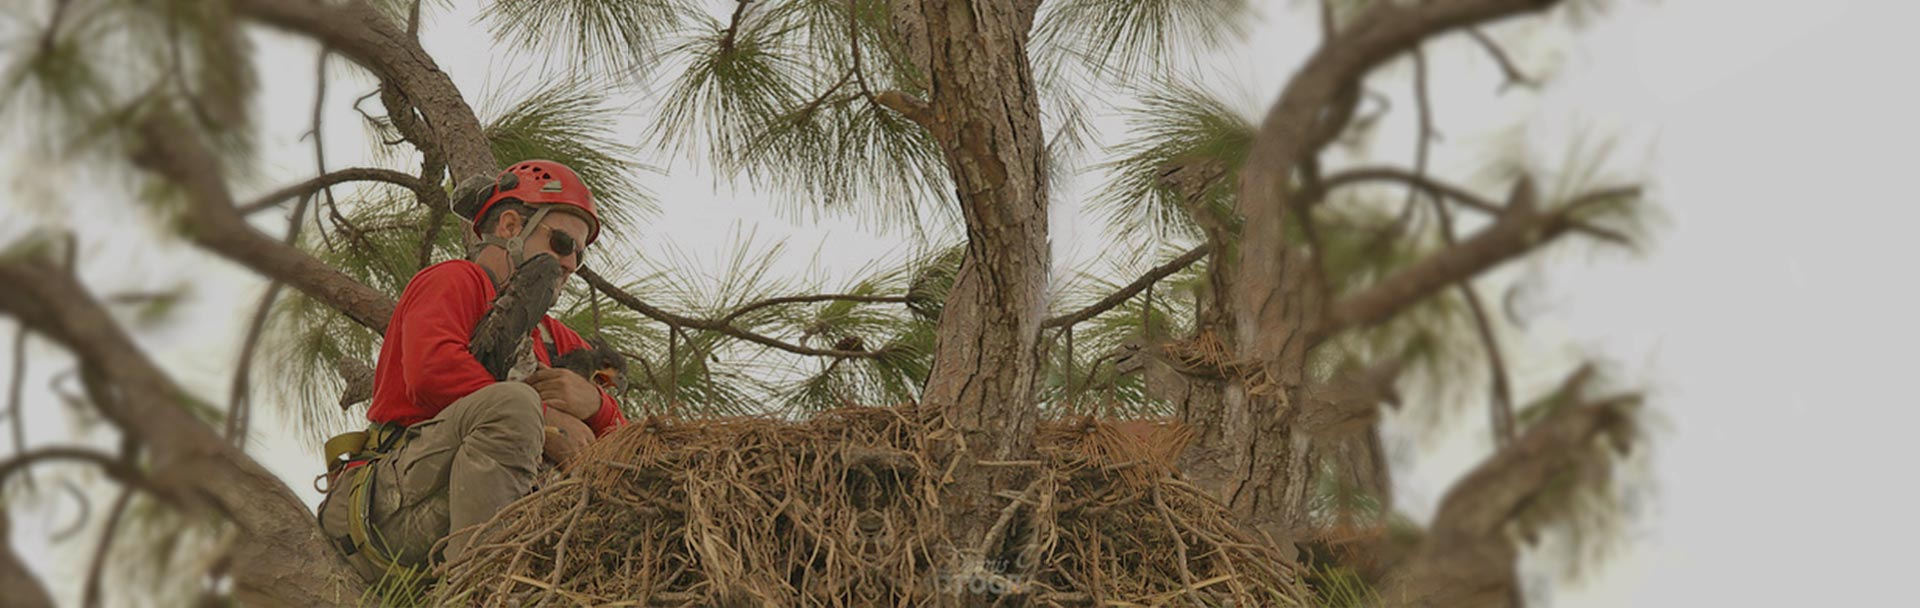 Eagle Re-Nesting by ISA Certified Arborist, Ian Orlikoff | Signature Tree Care in Naples, FL